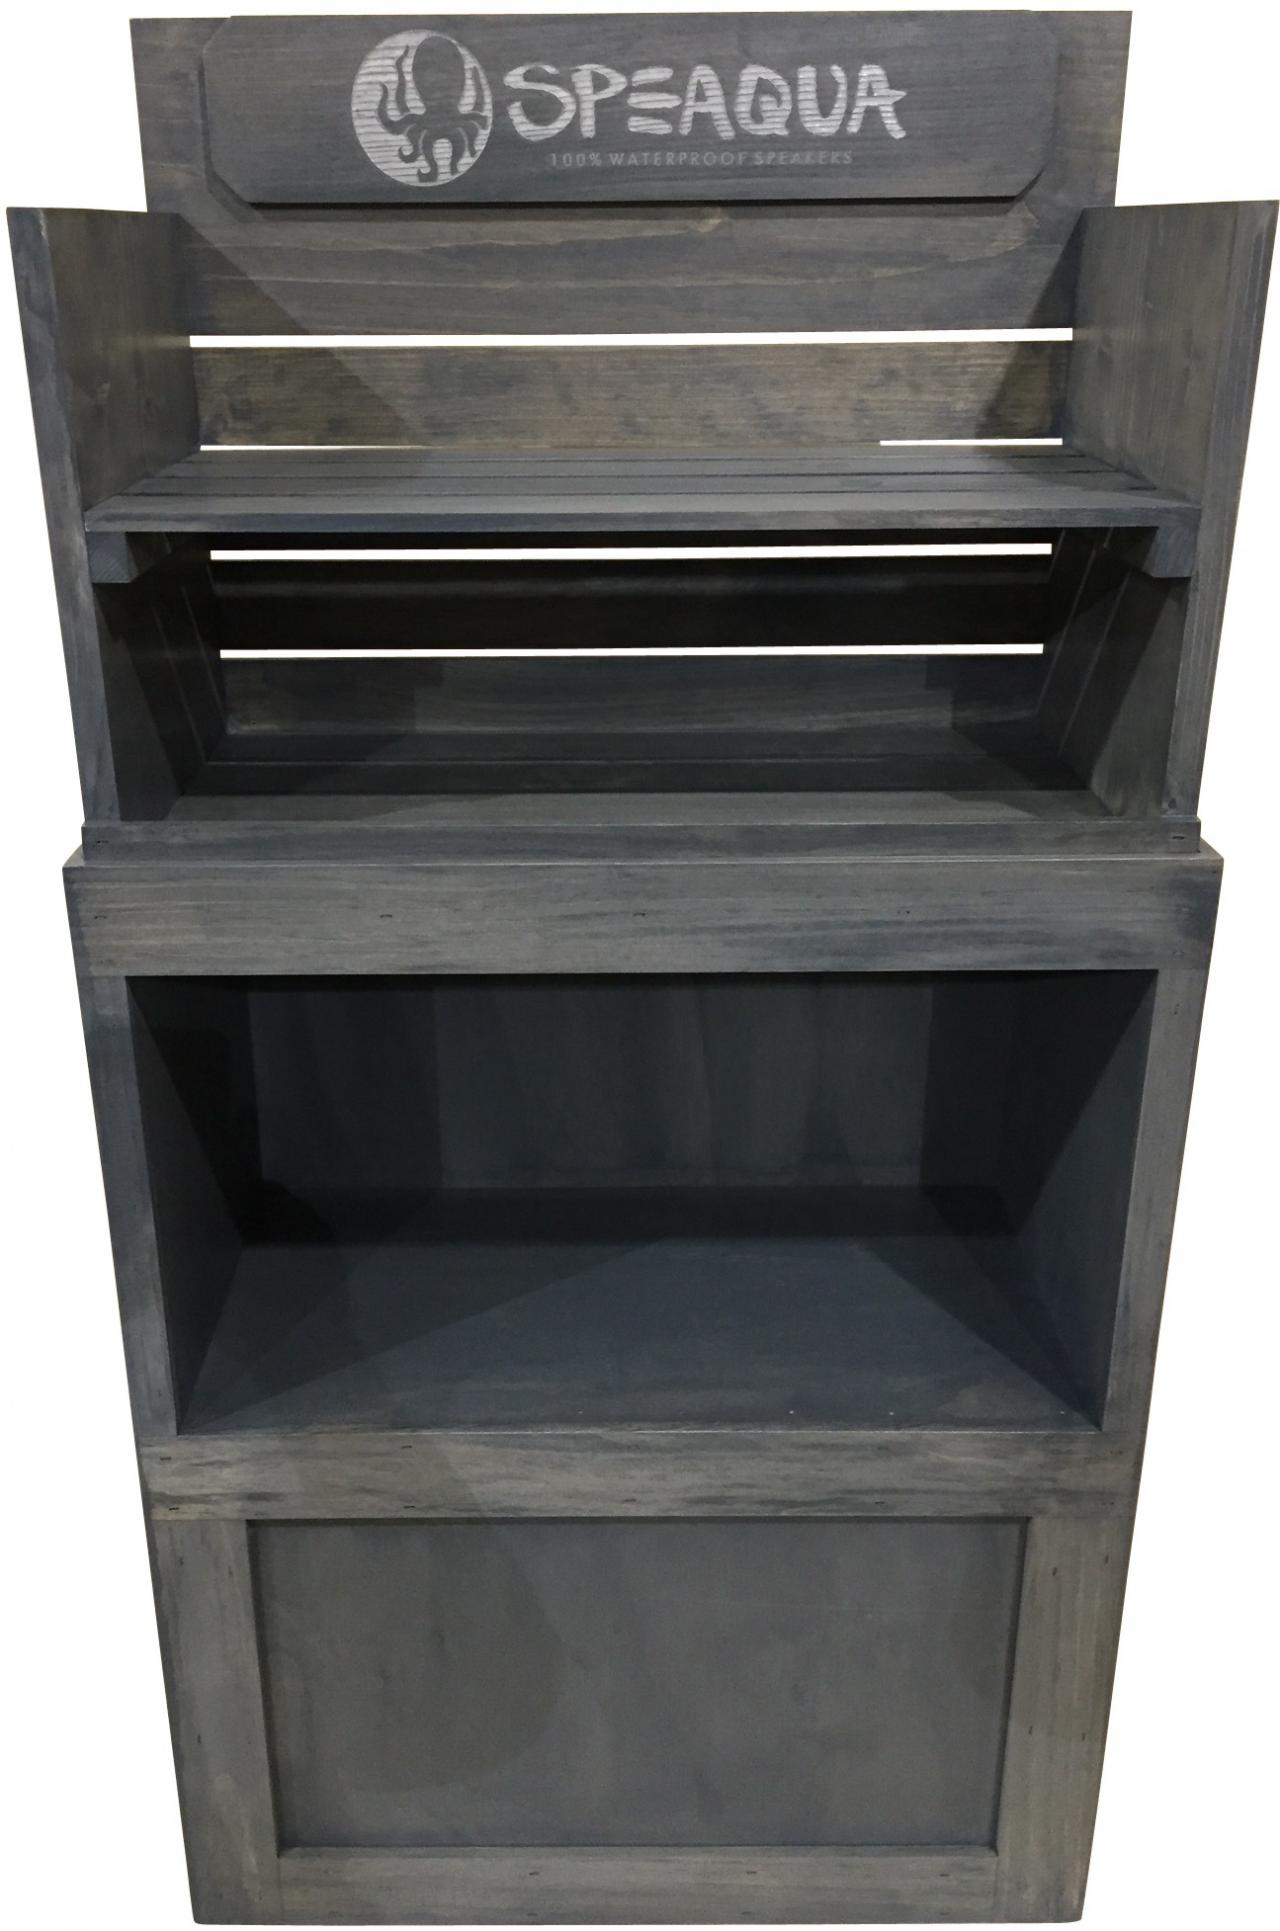 ... Rustic Wood Speaqua Shelf Merchandiser Best Buy Gray Floor Product  Display ...